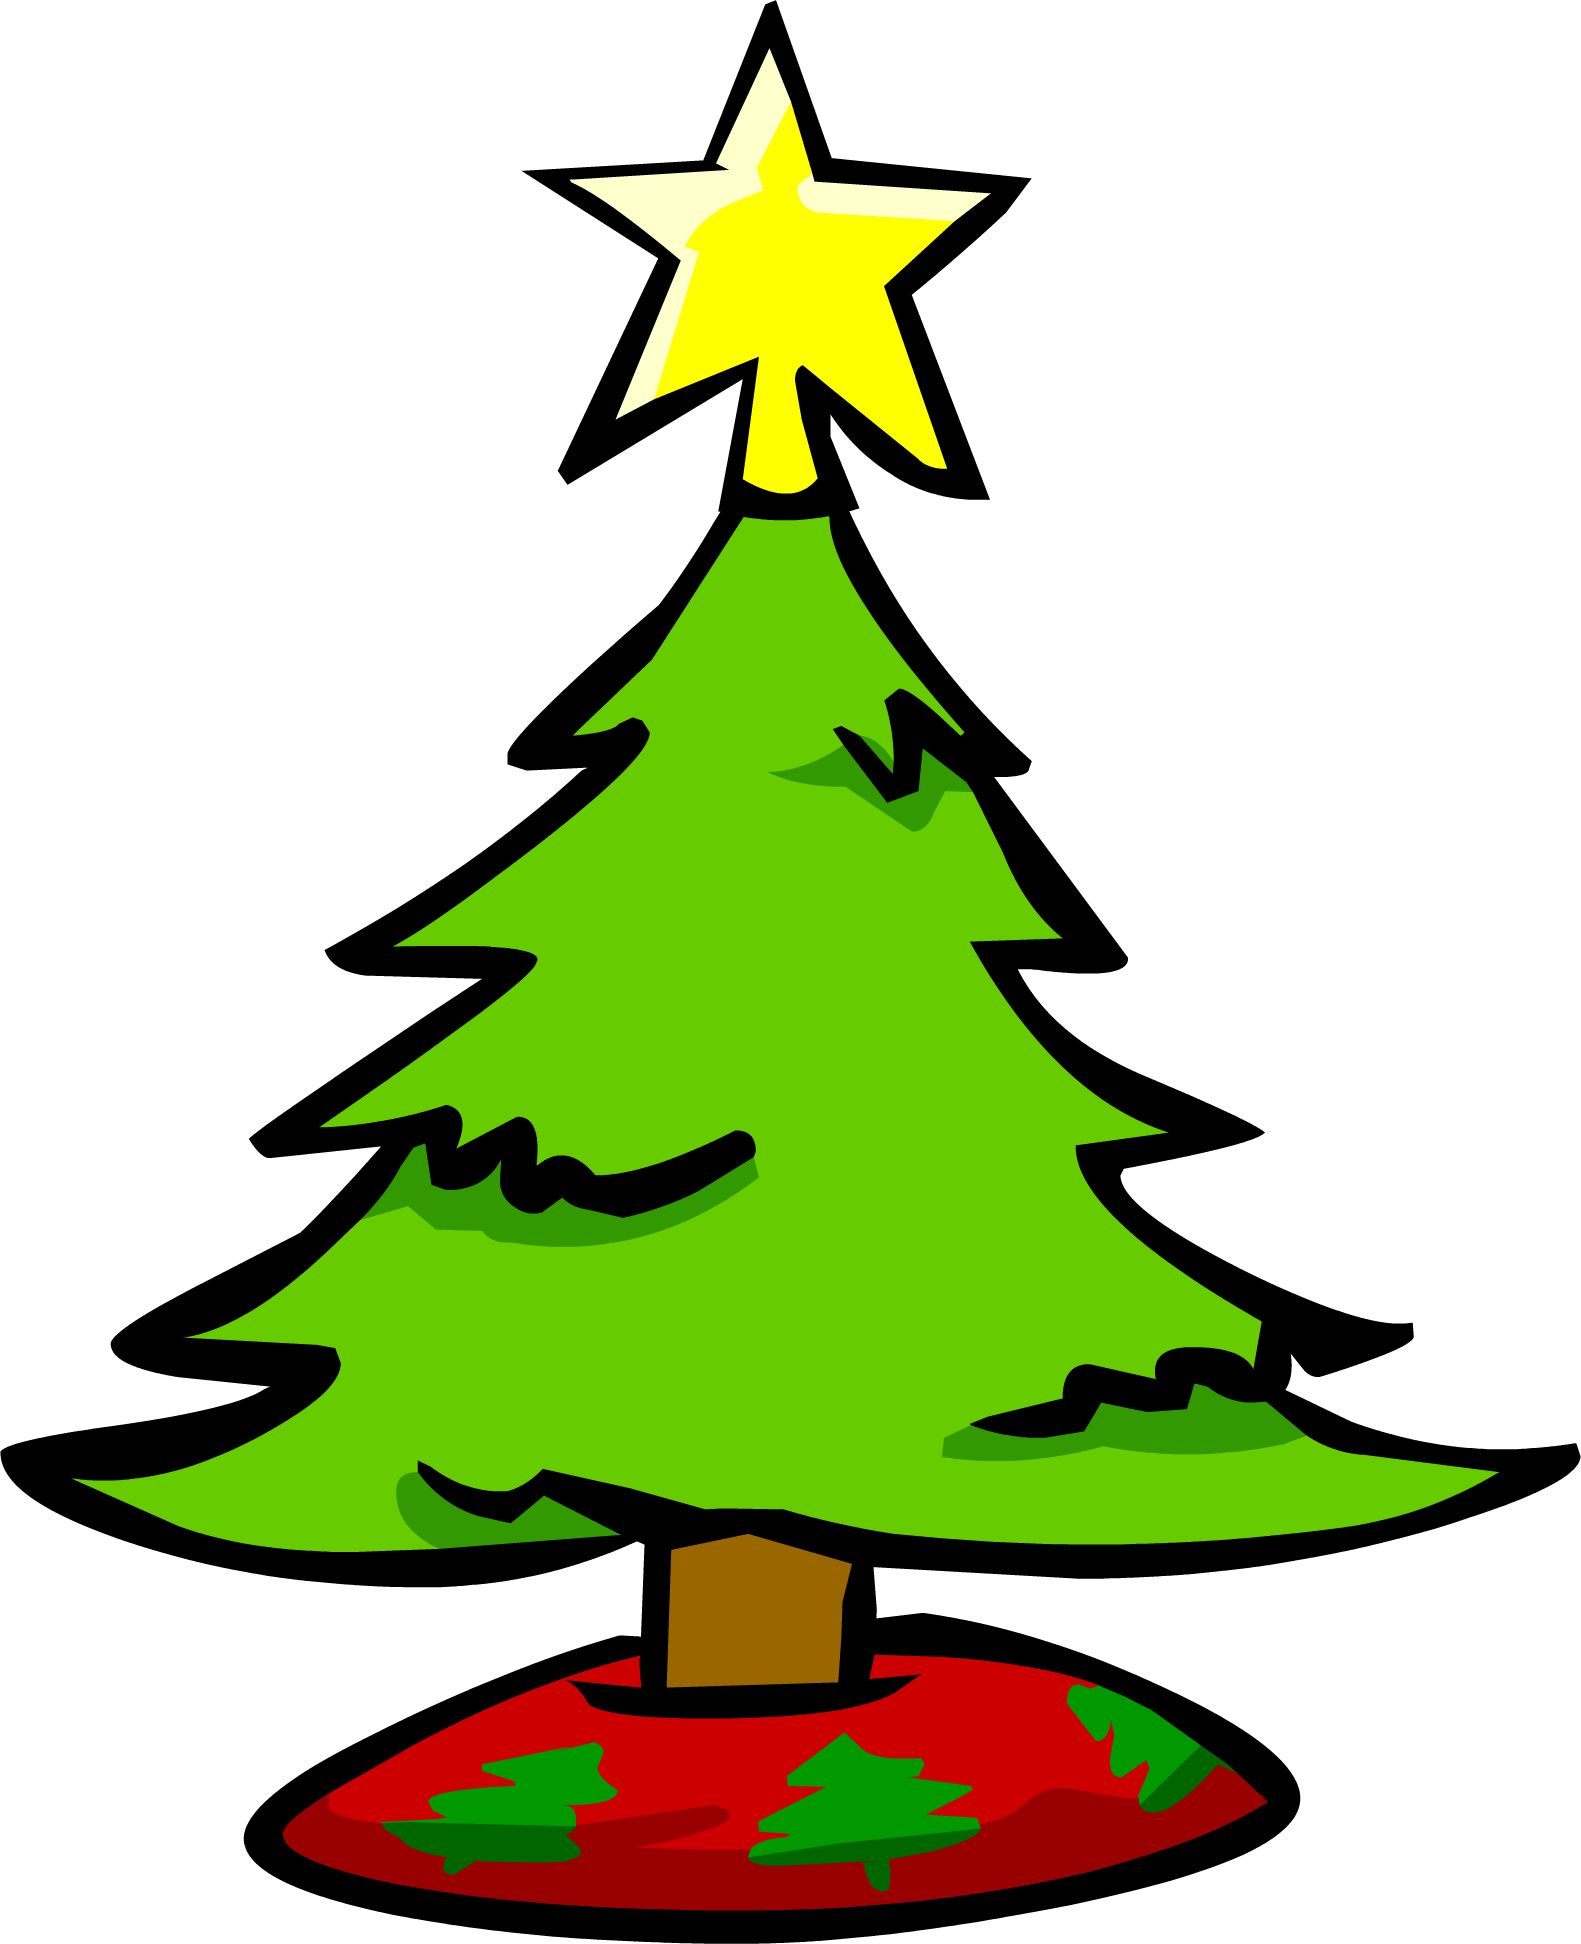 Plain christmas tree clipart clip art black and white download Small Christmas Tree | Club Penguin Rewritten Wiki | FANDOM powered ... clip art black and white download